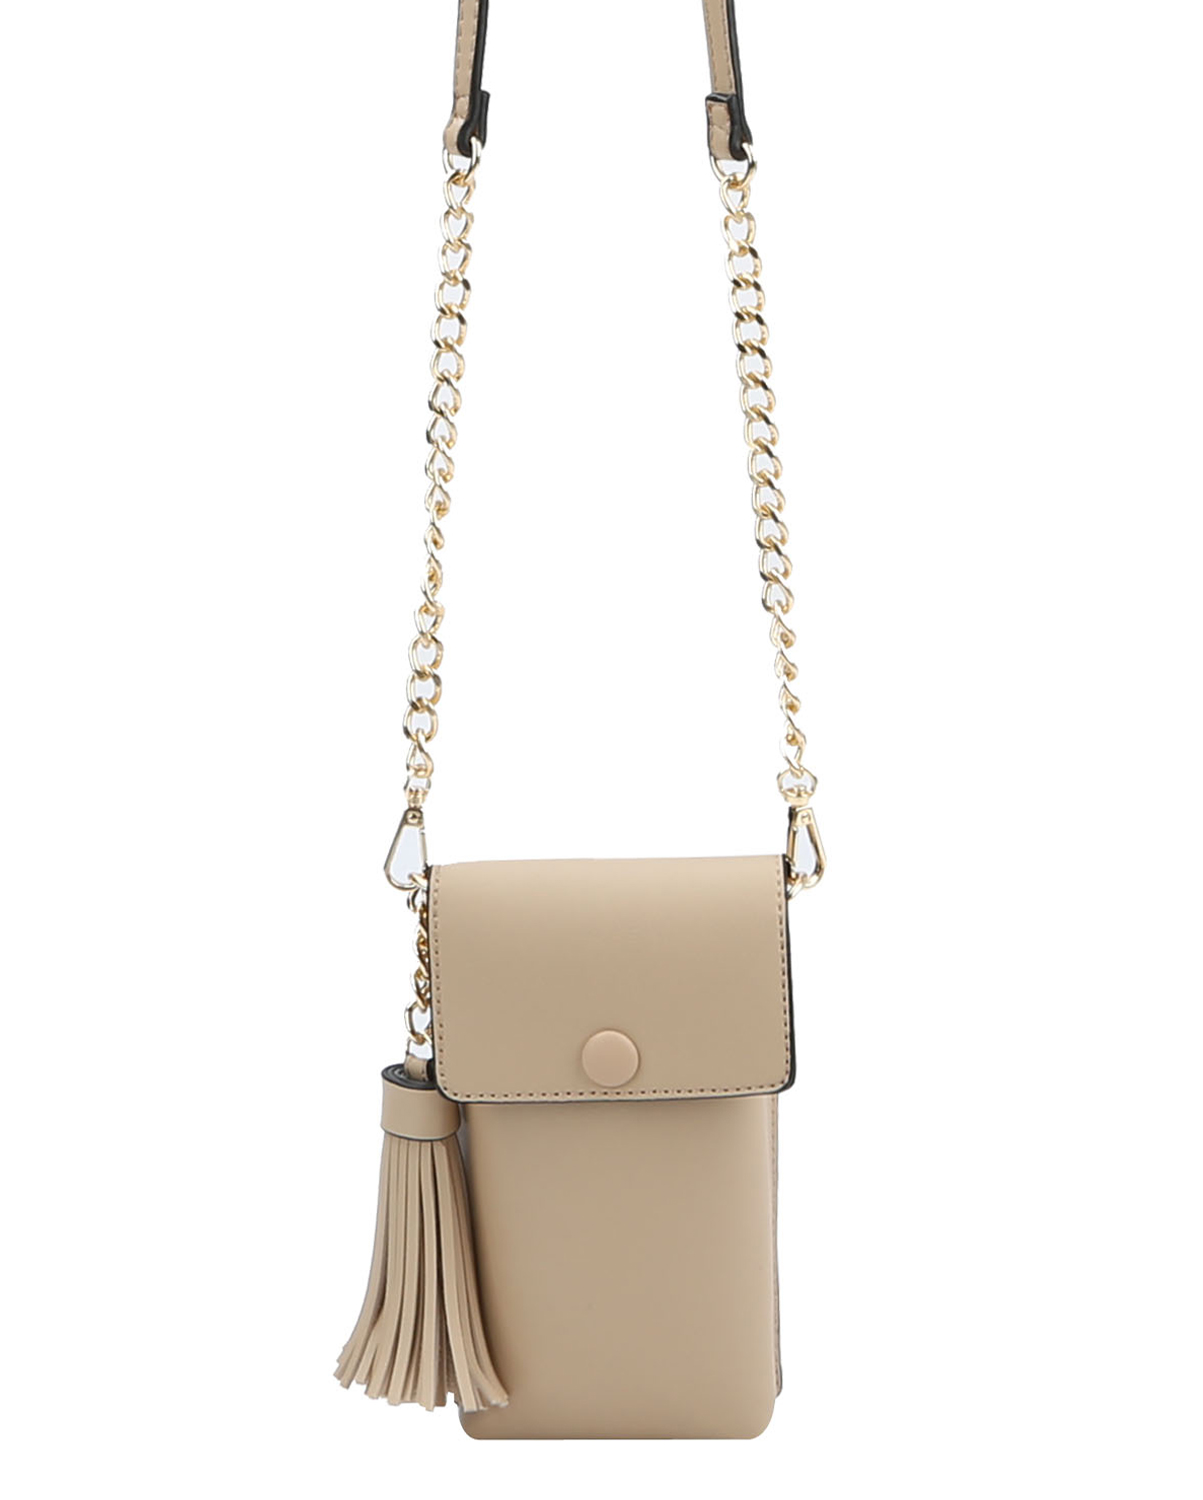 CTJY0024(TP)-wholesale-mini-messenger-bag-convertible-waist-solid-color-vegan-leather-tassel-chain-gold-flap(0).jpg